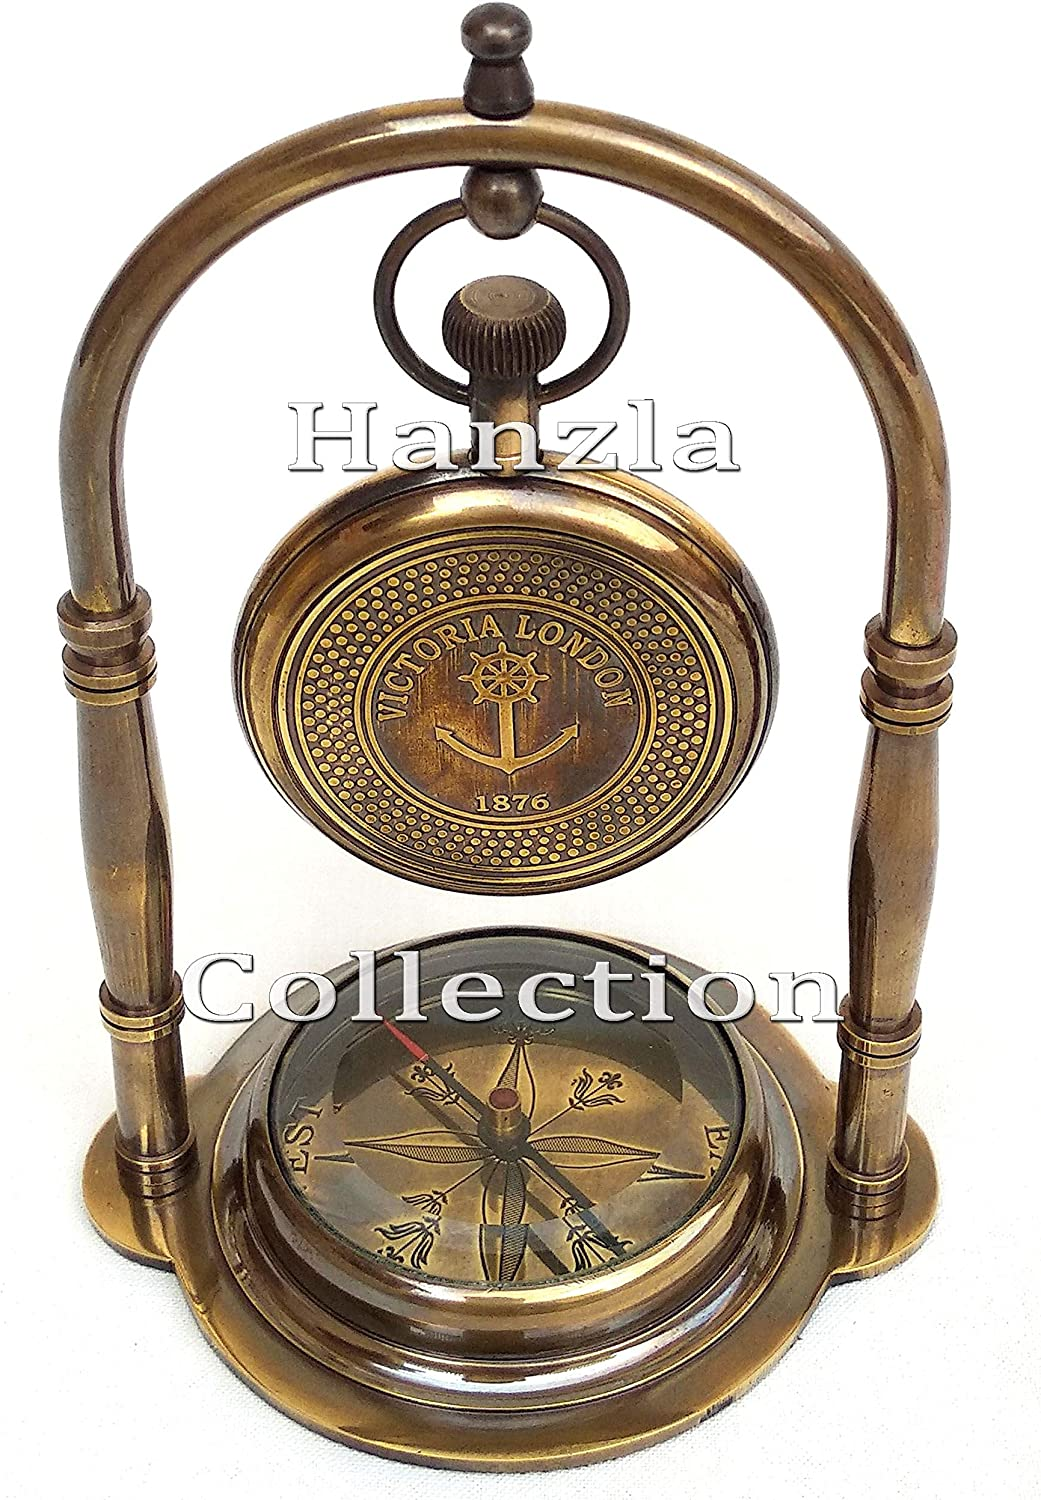 Antique Nautical Desk Clock With Brass Stand Hanging Home Decor Collectible Gift